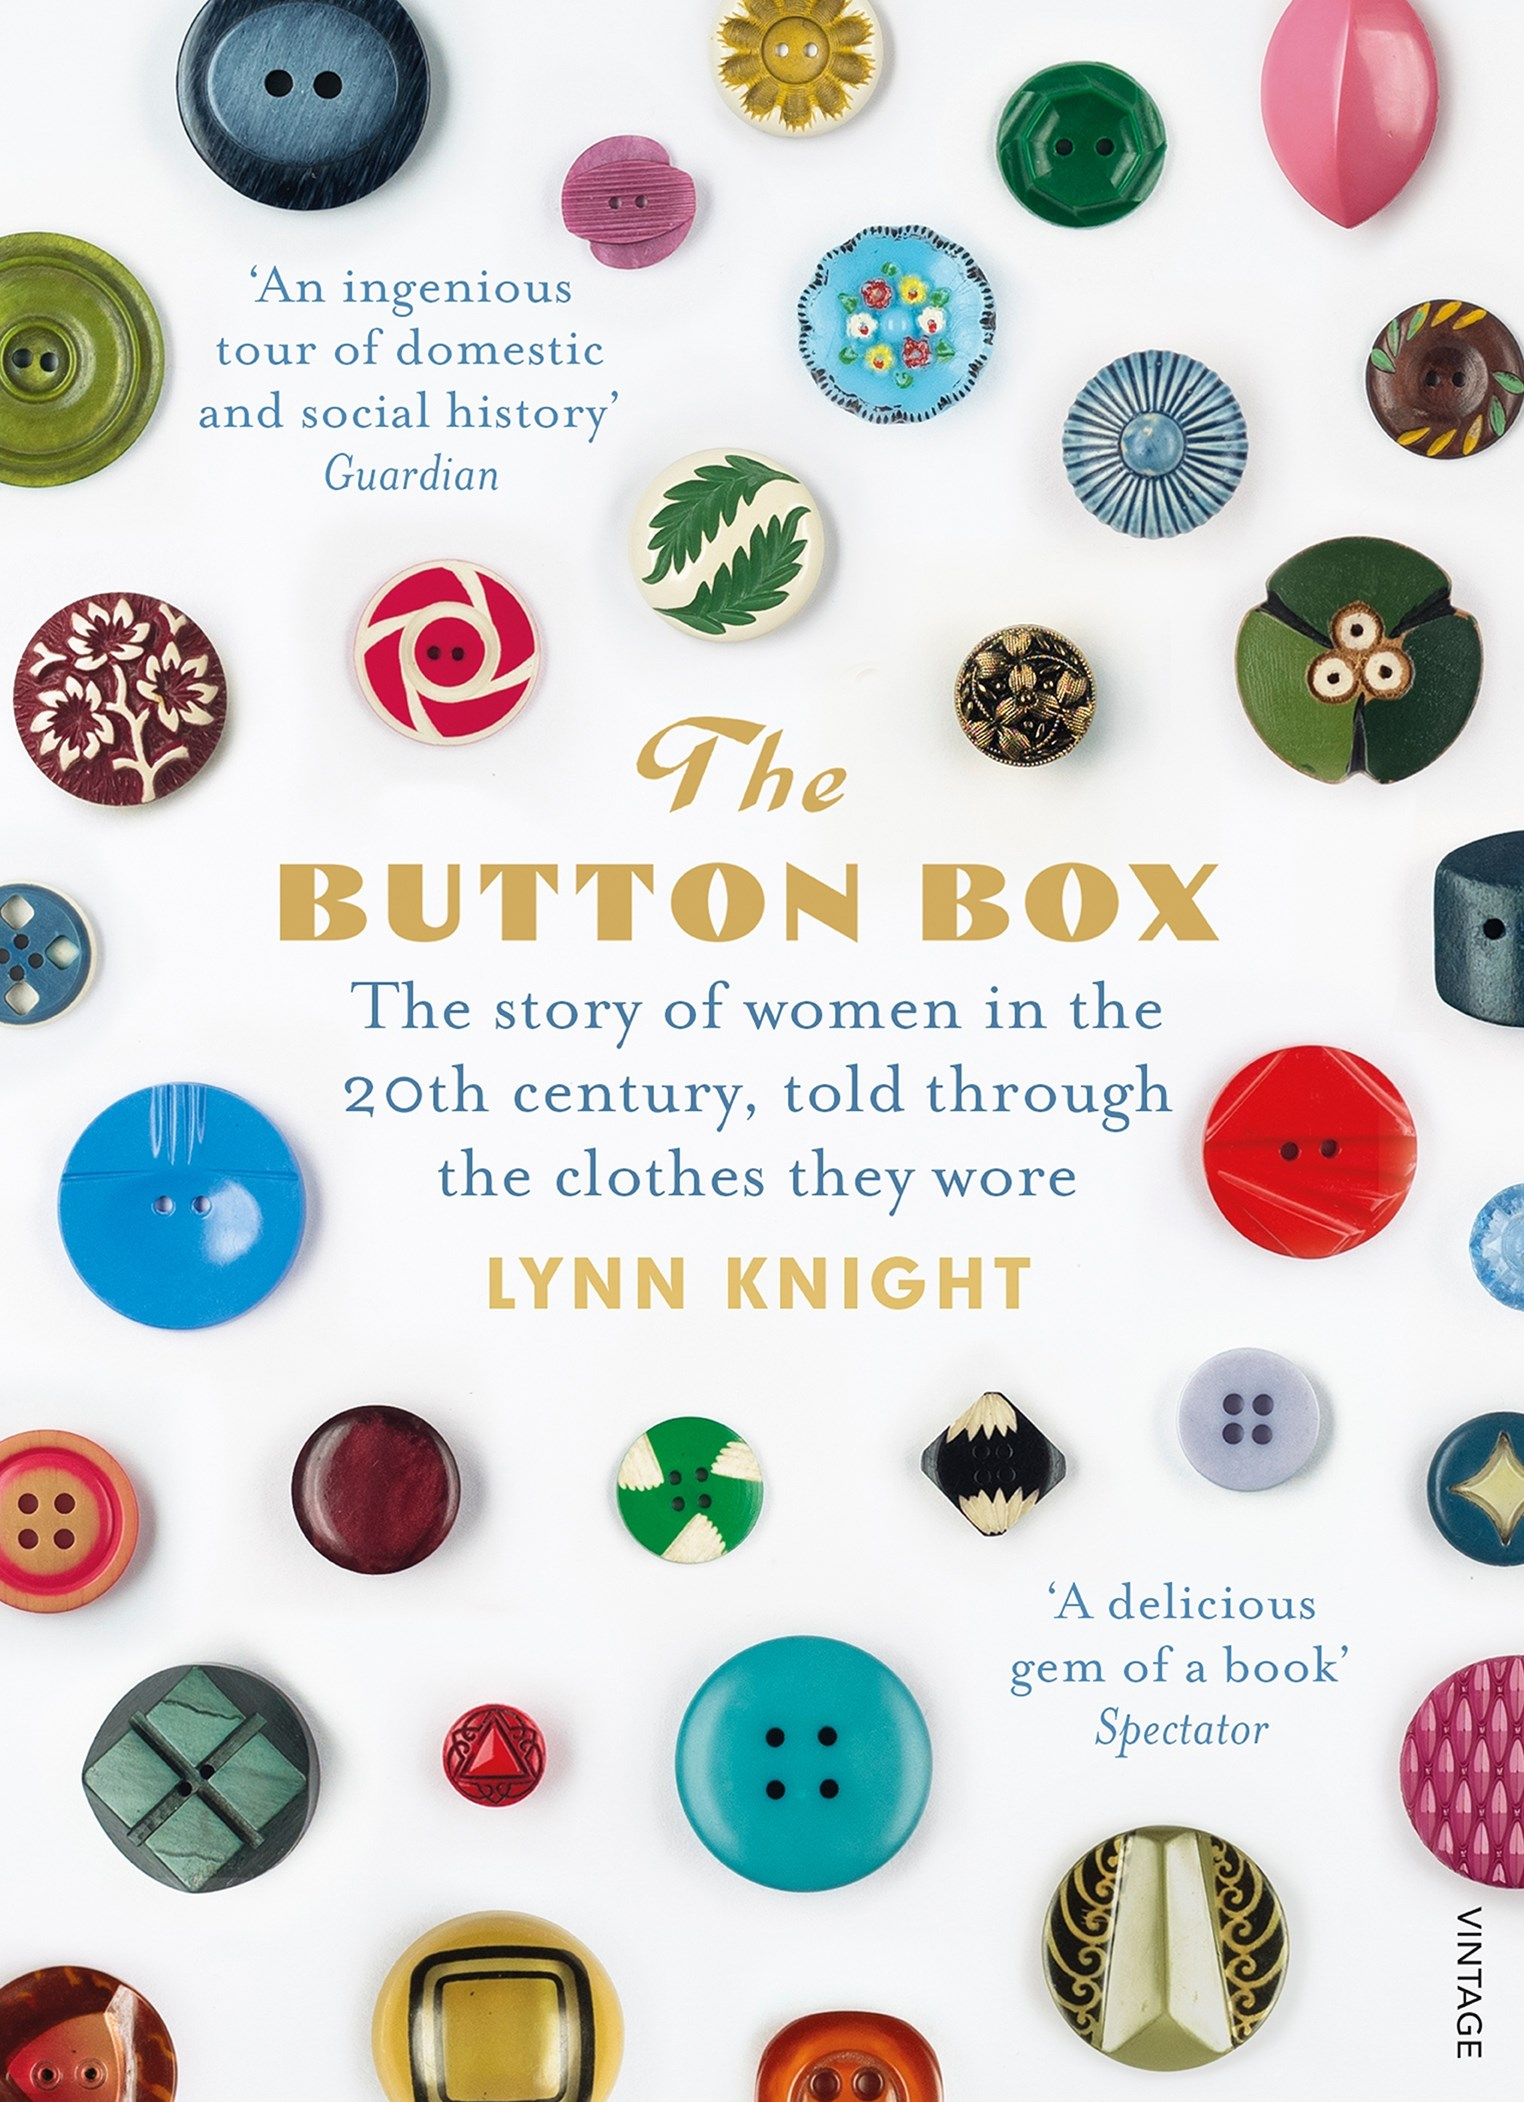 The Button Box: Lifting the Lid on Women's Lives